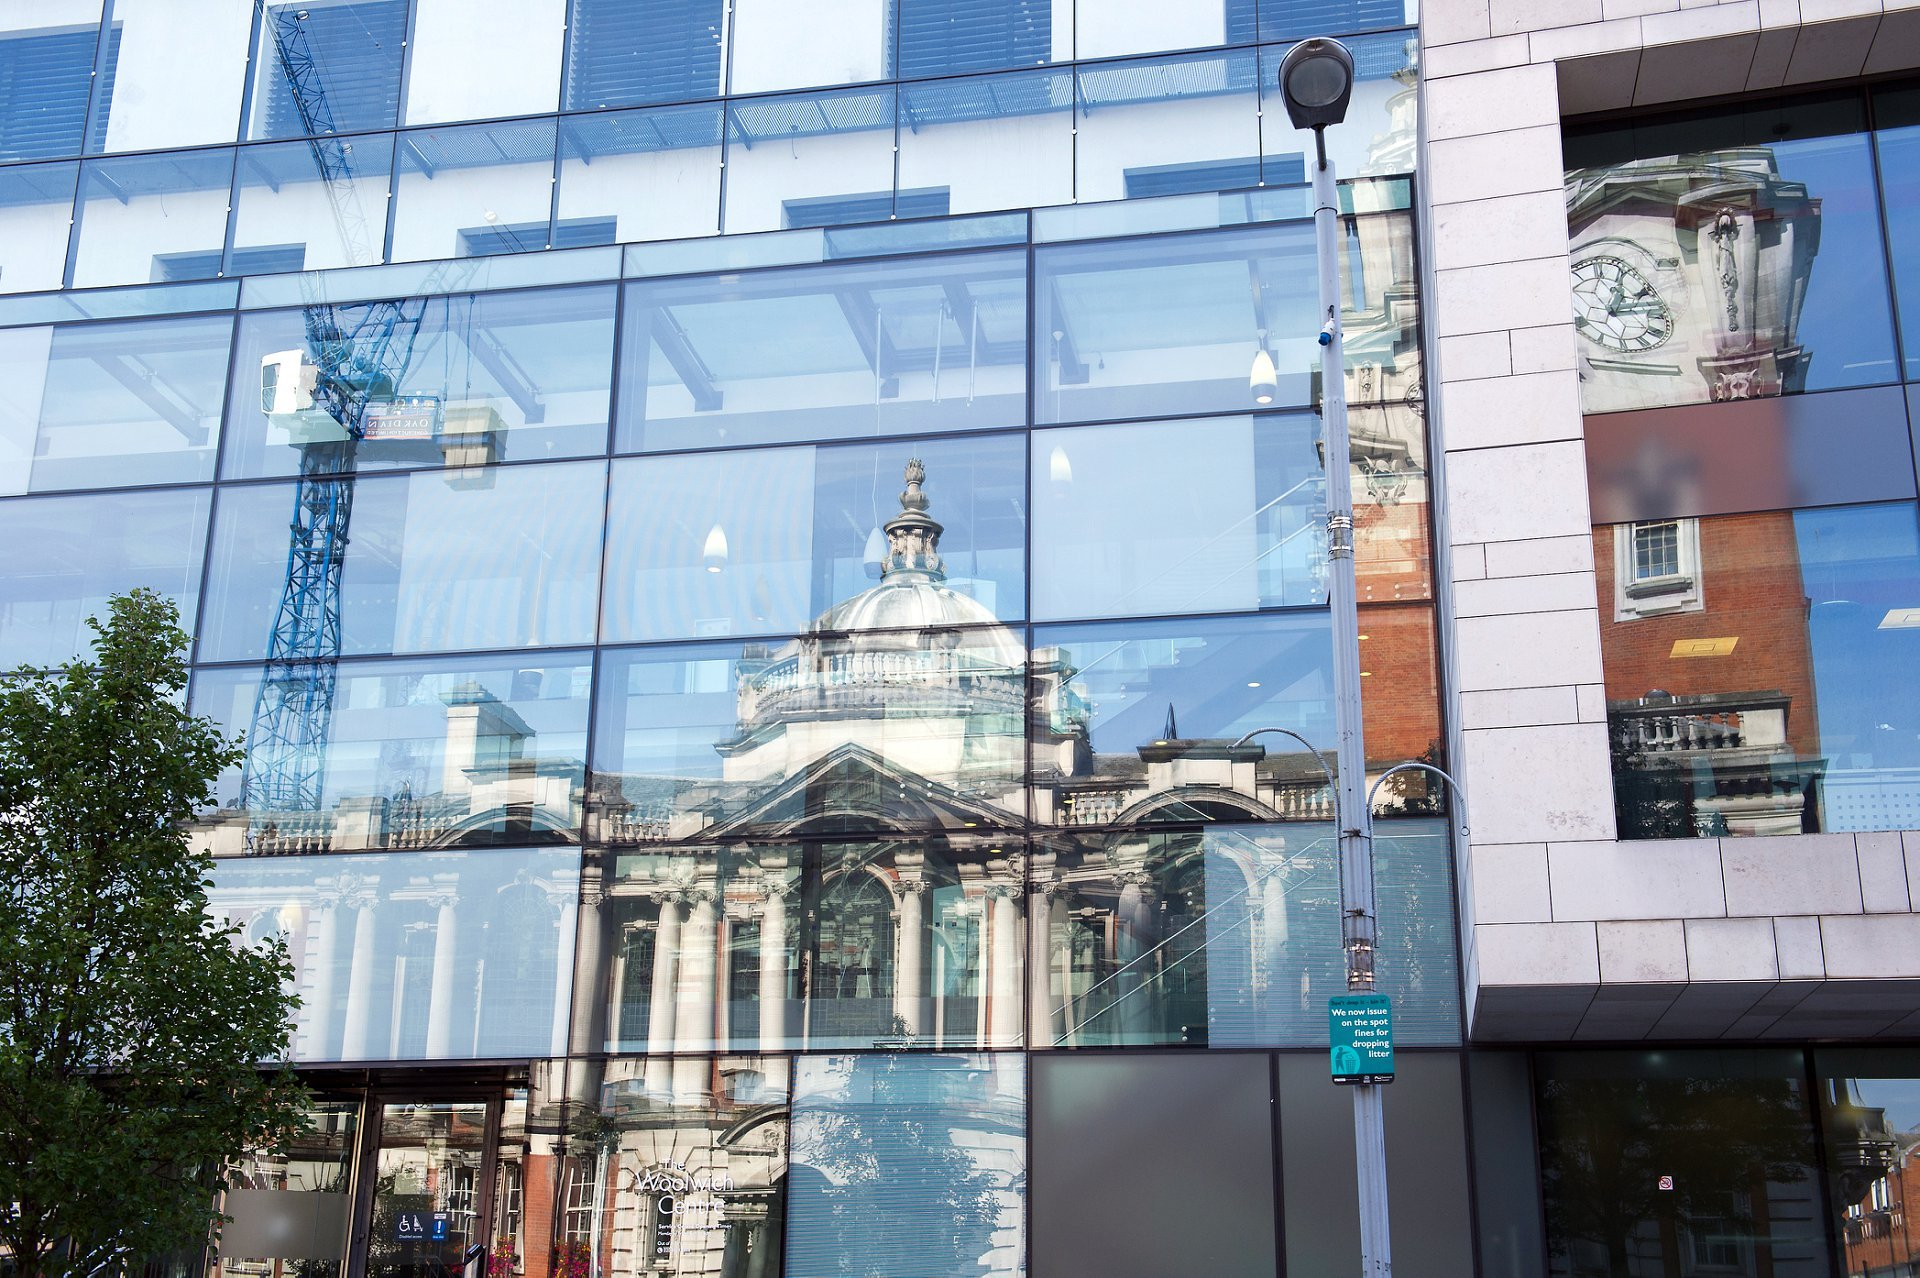 Greenwich Wedding Photographer Woolwich Town Hall reflected in the Woolwich Centre for Greenwich Register Office weddings in the Royal Borough of Greenwich